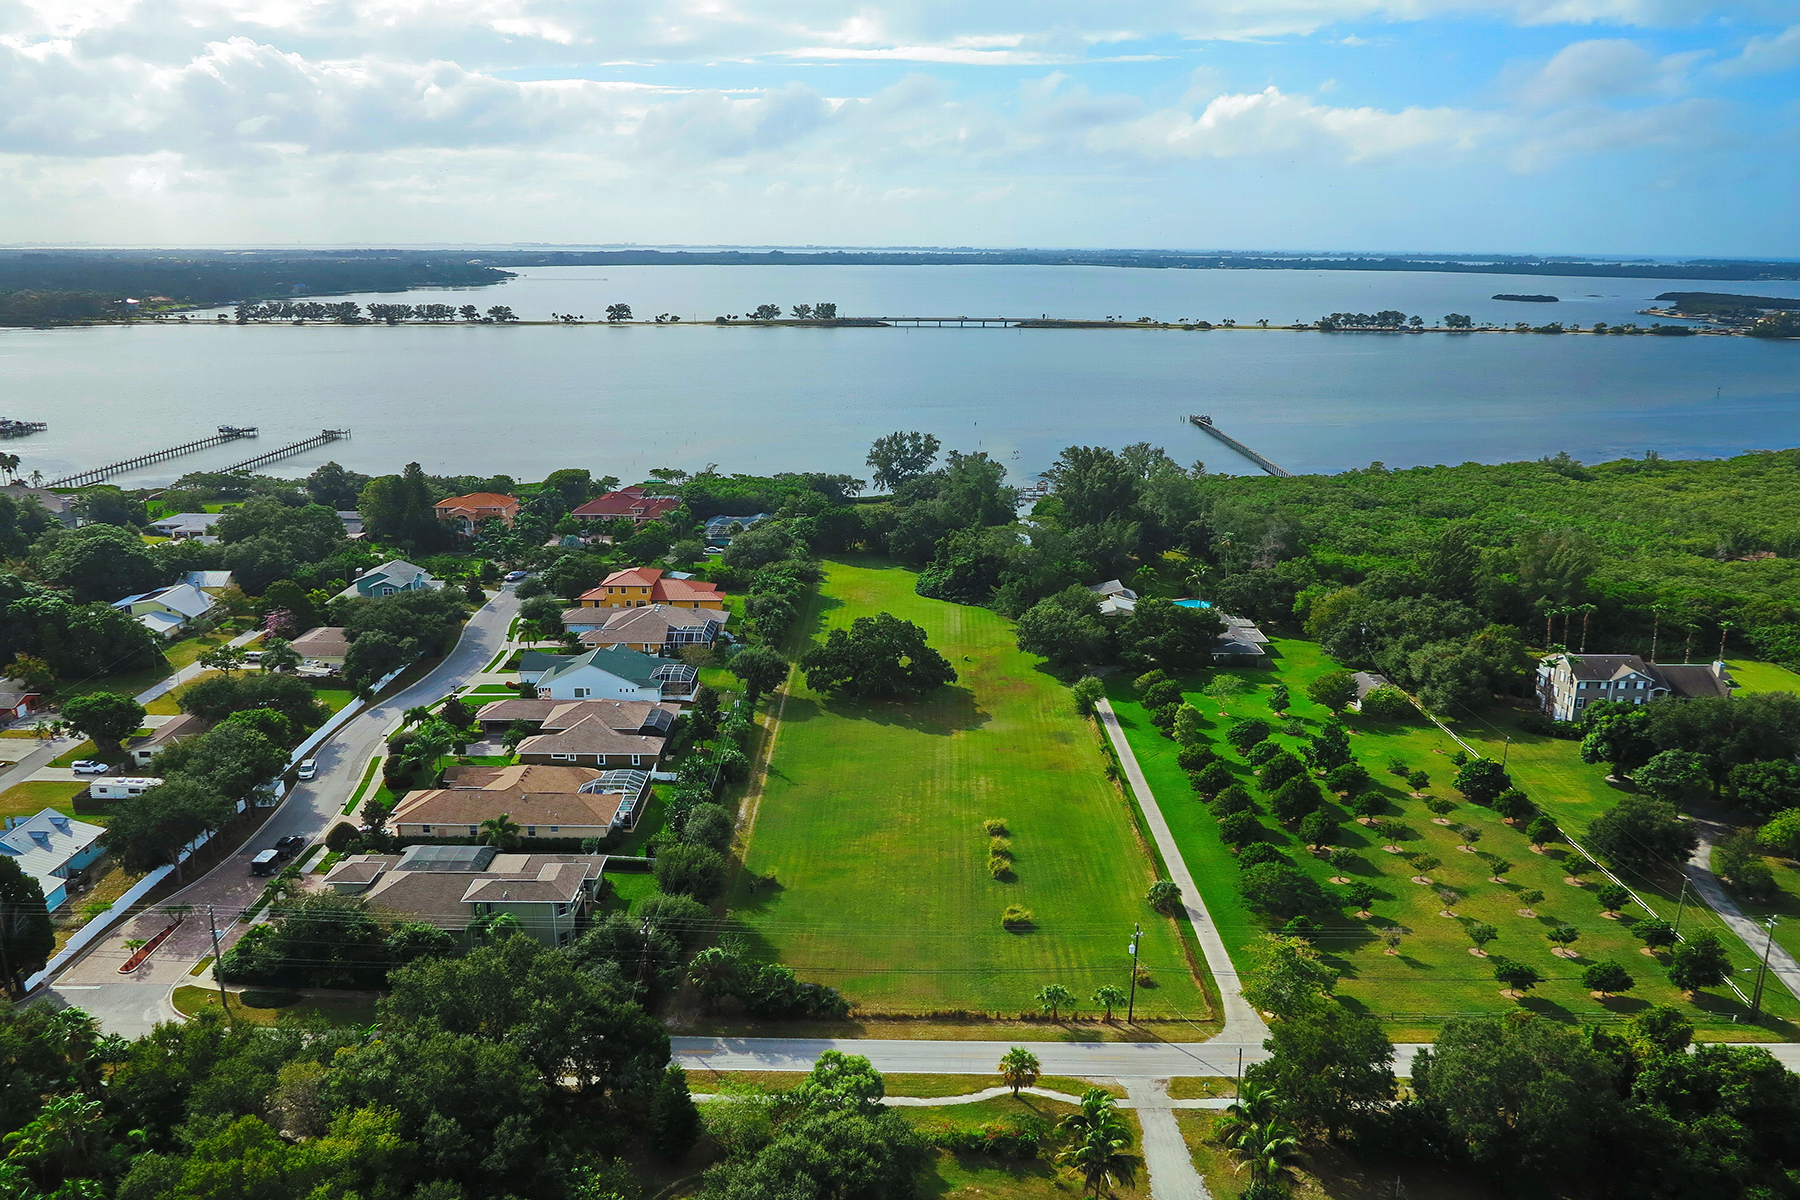 Terreno por un Venta en WEST BRADENTON 8921 9th Ave NW 2 Bradenton, Florida, 34209 Estados Unidos